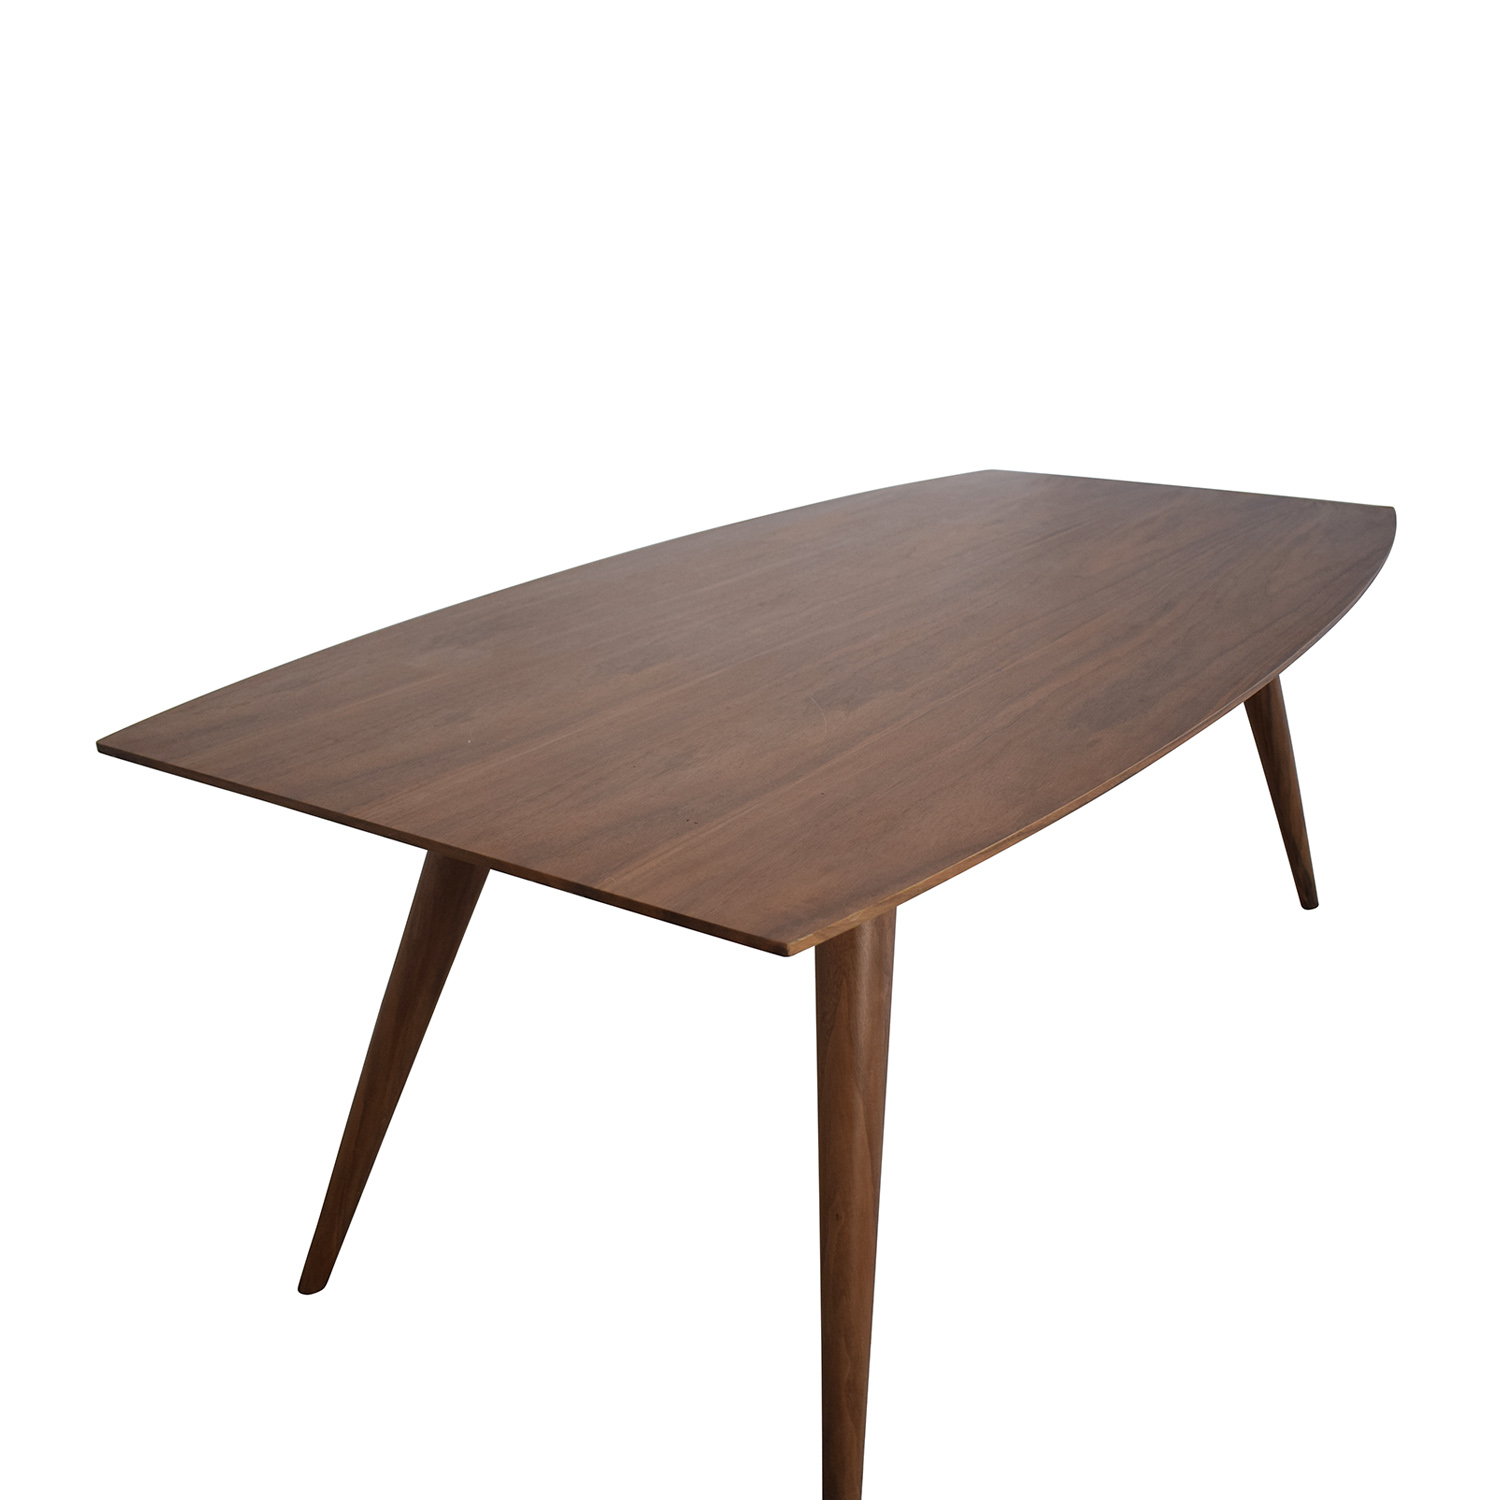 Eurø Style Euro Style Mid Century Dining Table second hand